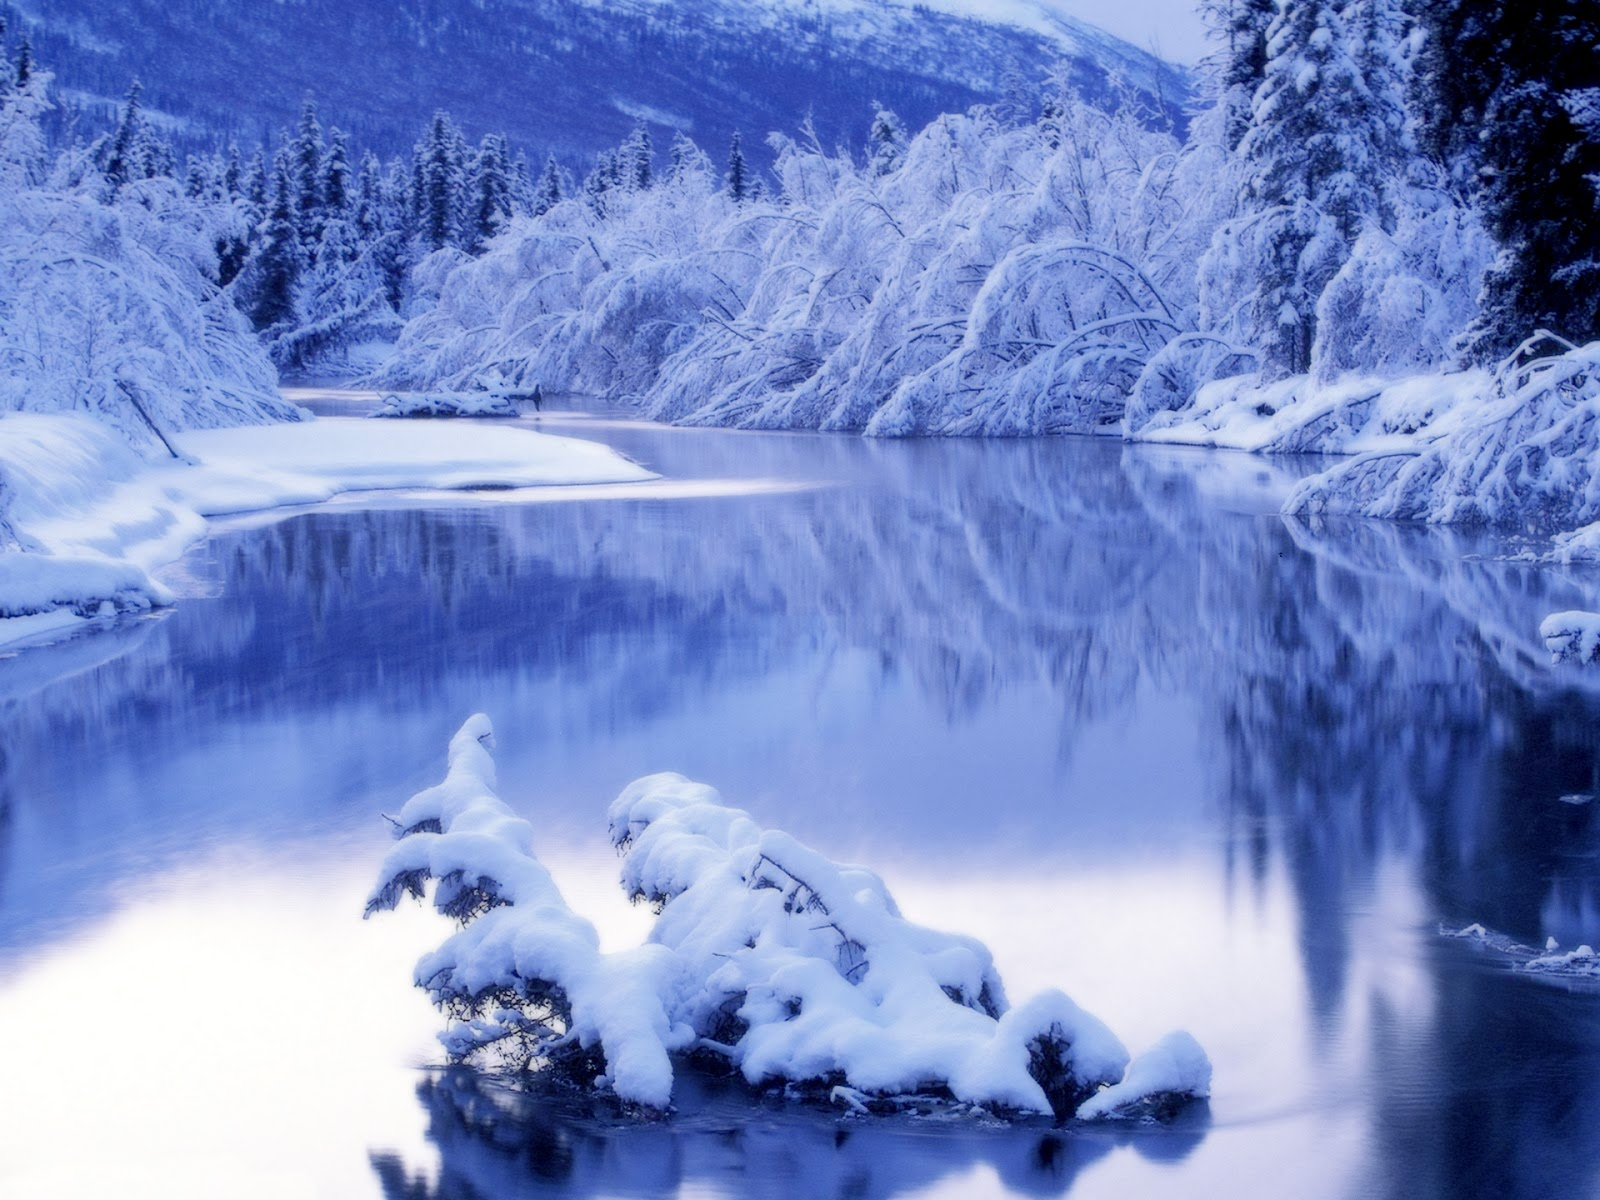 winter nature wallpaper desktop   Desktop Wallpaper 1600x1200